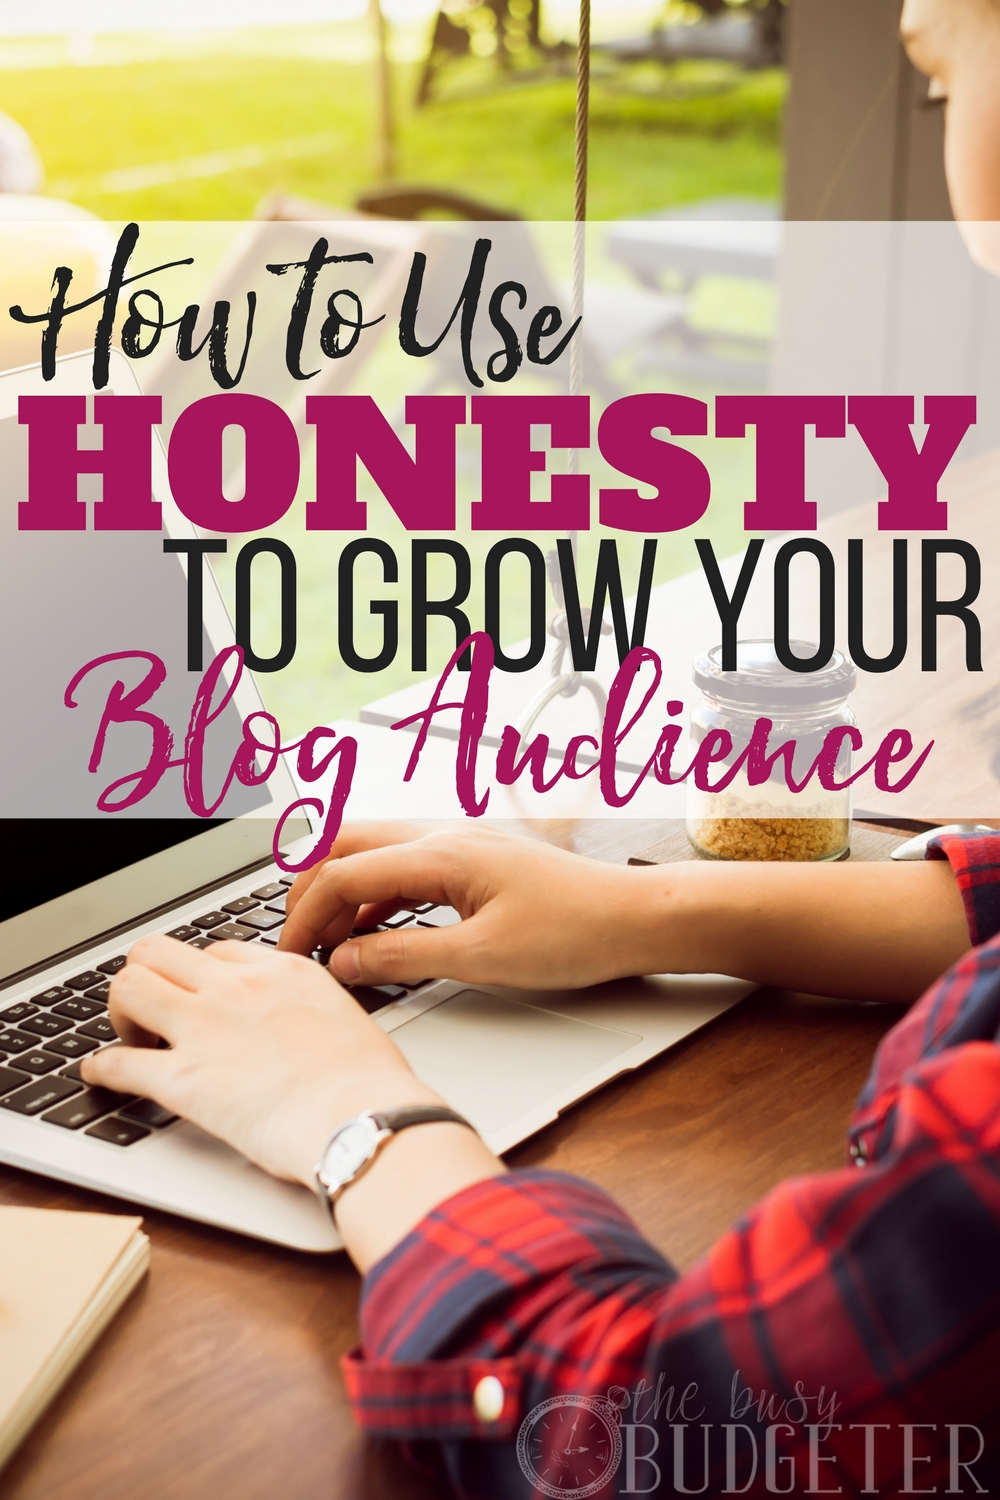 Finally someone said it! Every once and awhile your audience needs a good kick in the pants, this isn't going to scare them off - this is actually going to help you grow your blog audience! People want honesty, they want REAL-- they don't always want things sugar coated or to hear how you have everything figured out and they don't. Let's get real: be honest!